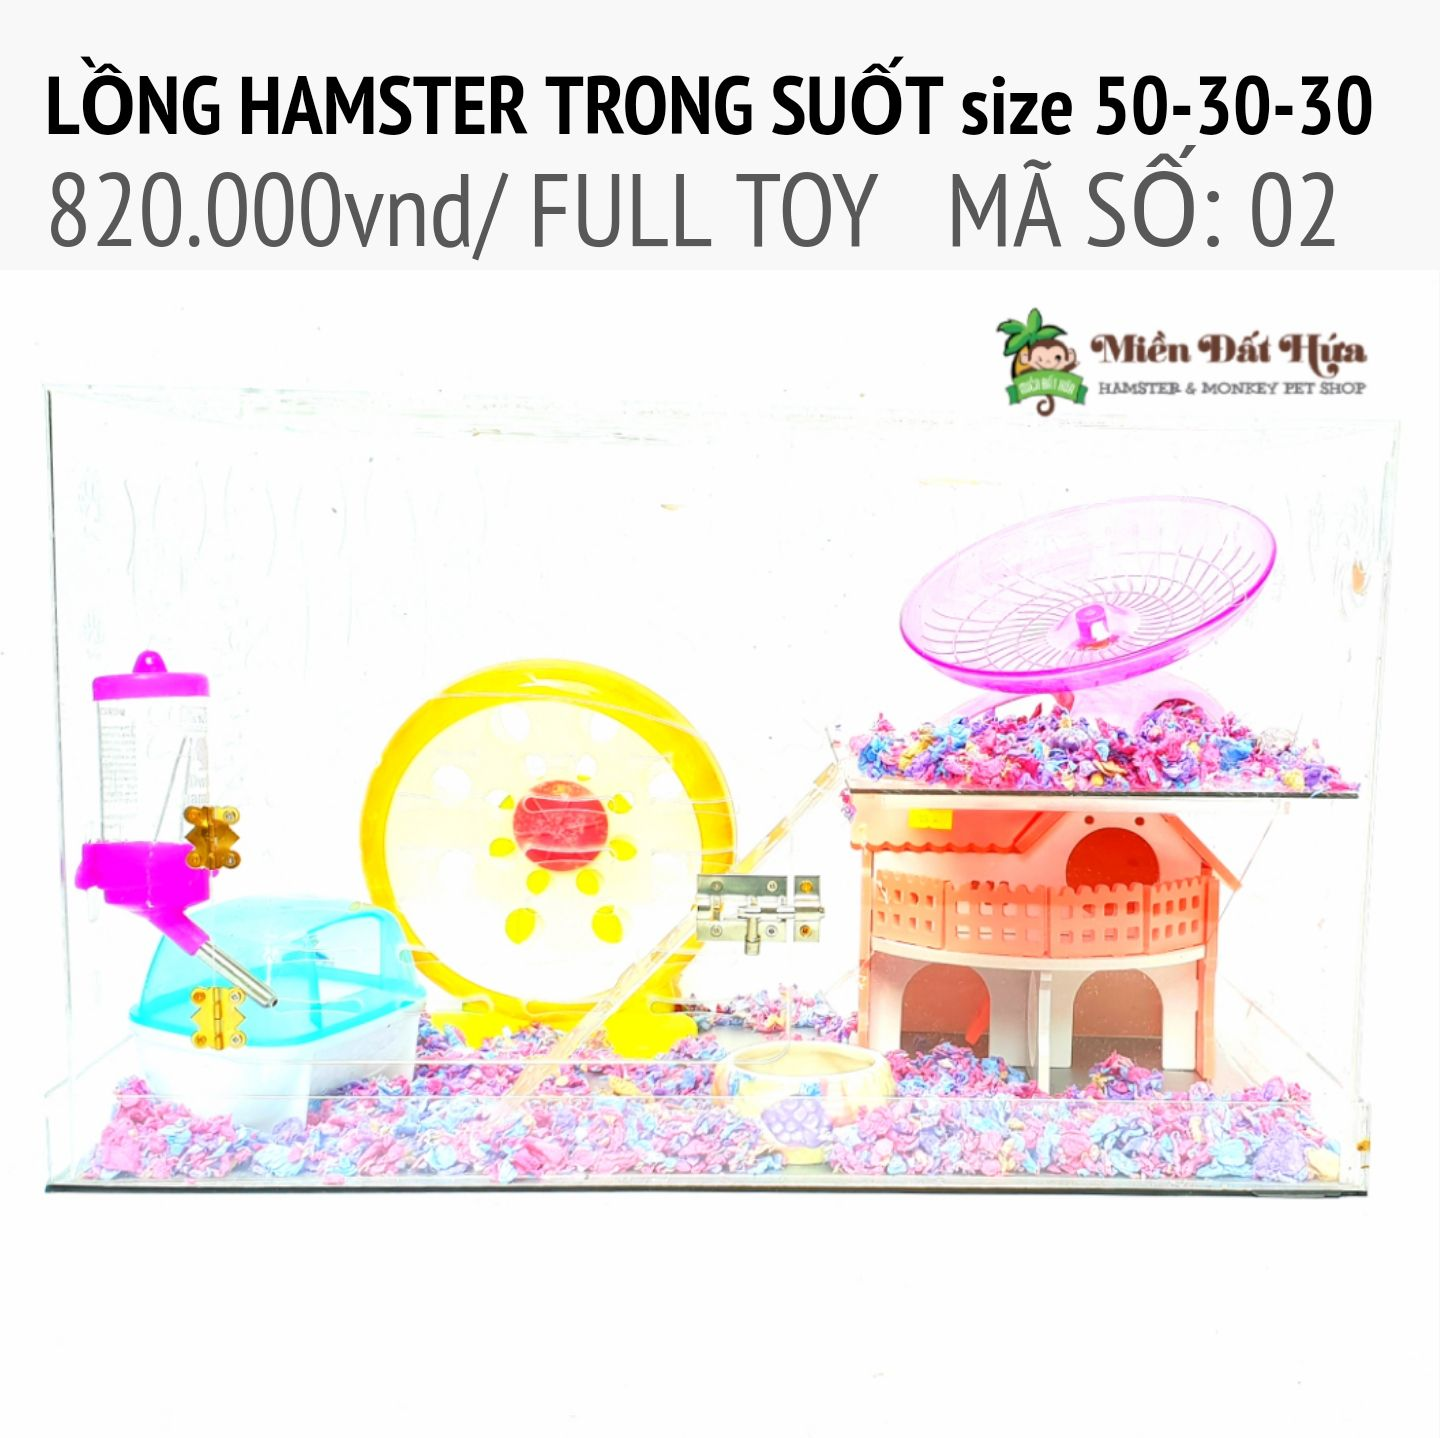 LỒNG hamster trong suốt size 50-30-30 ms02